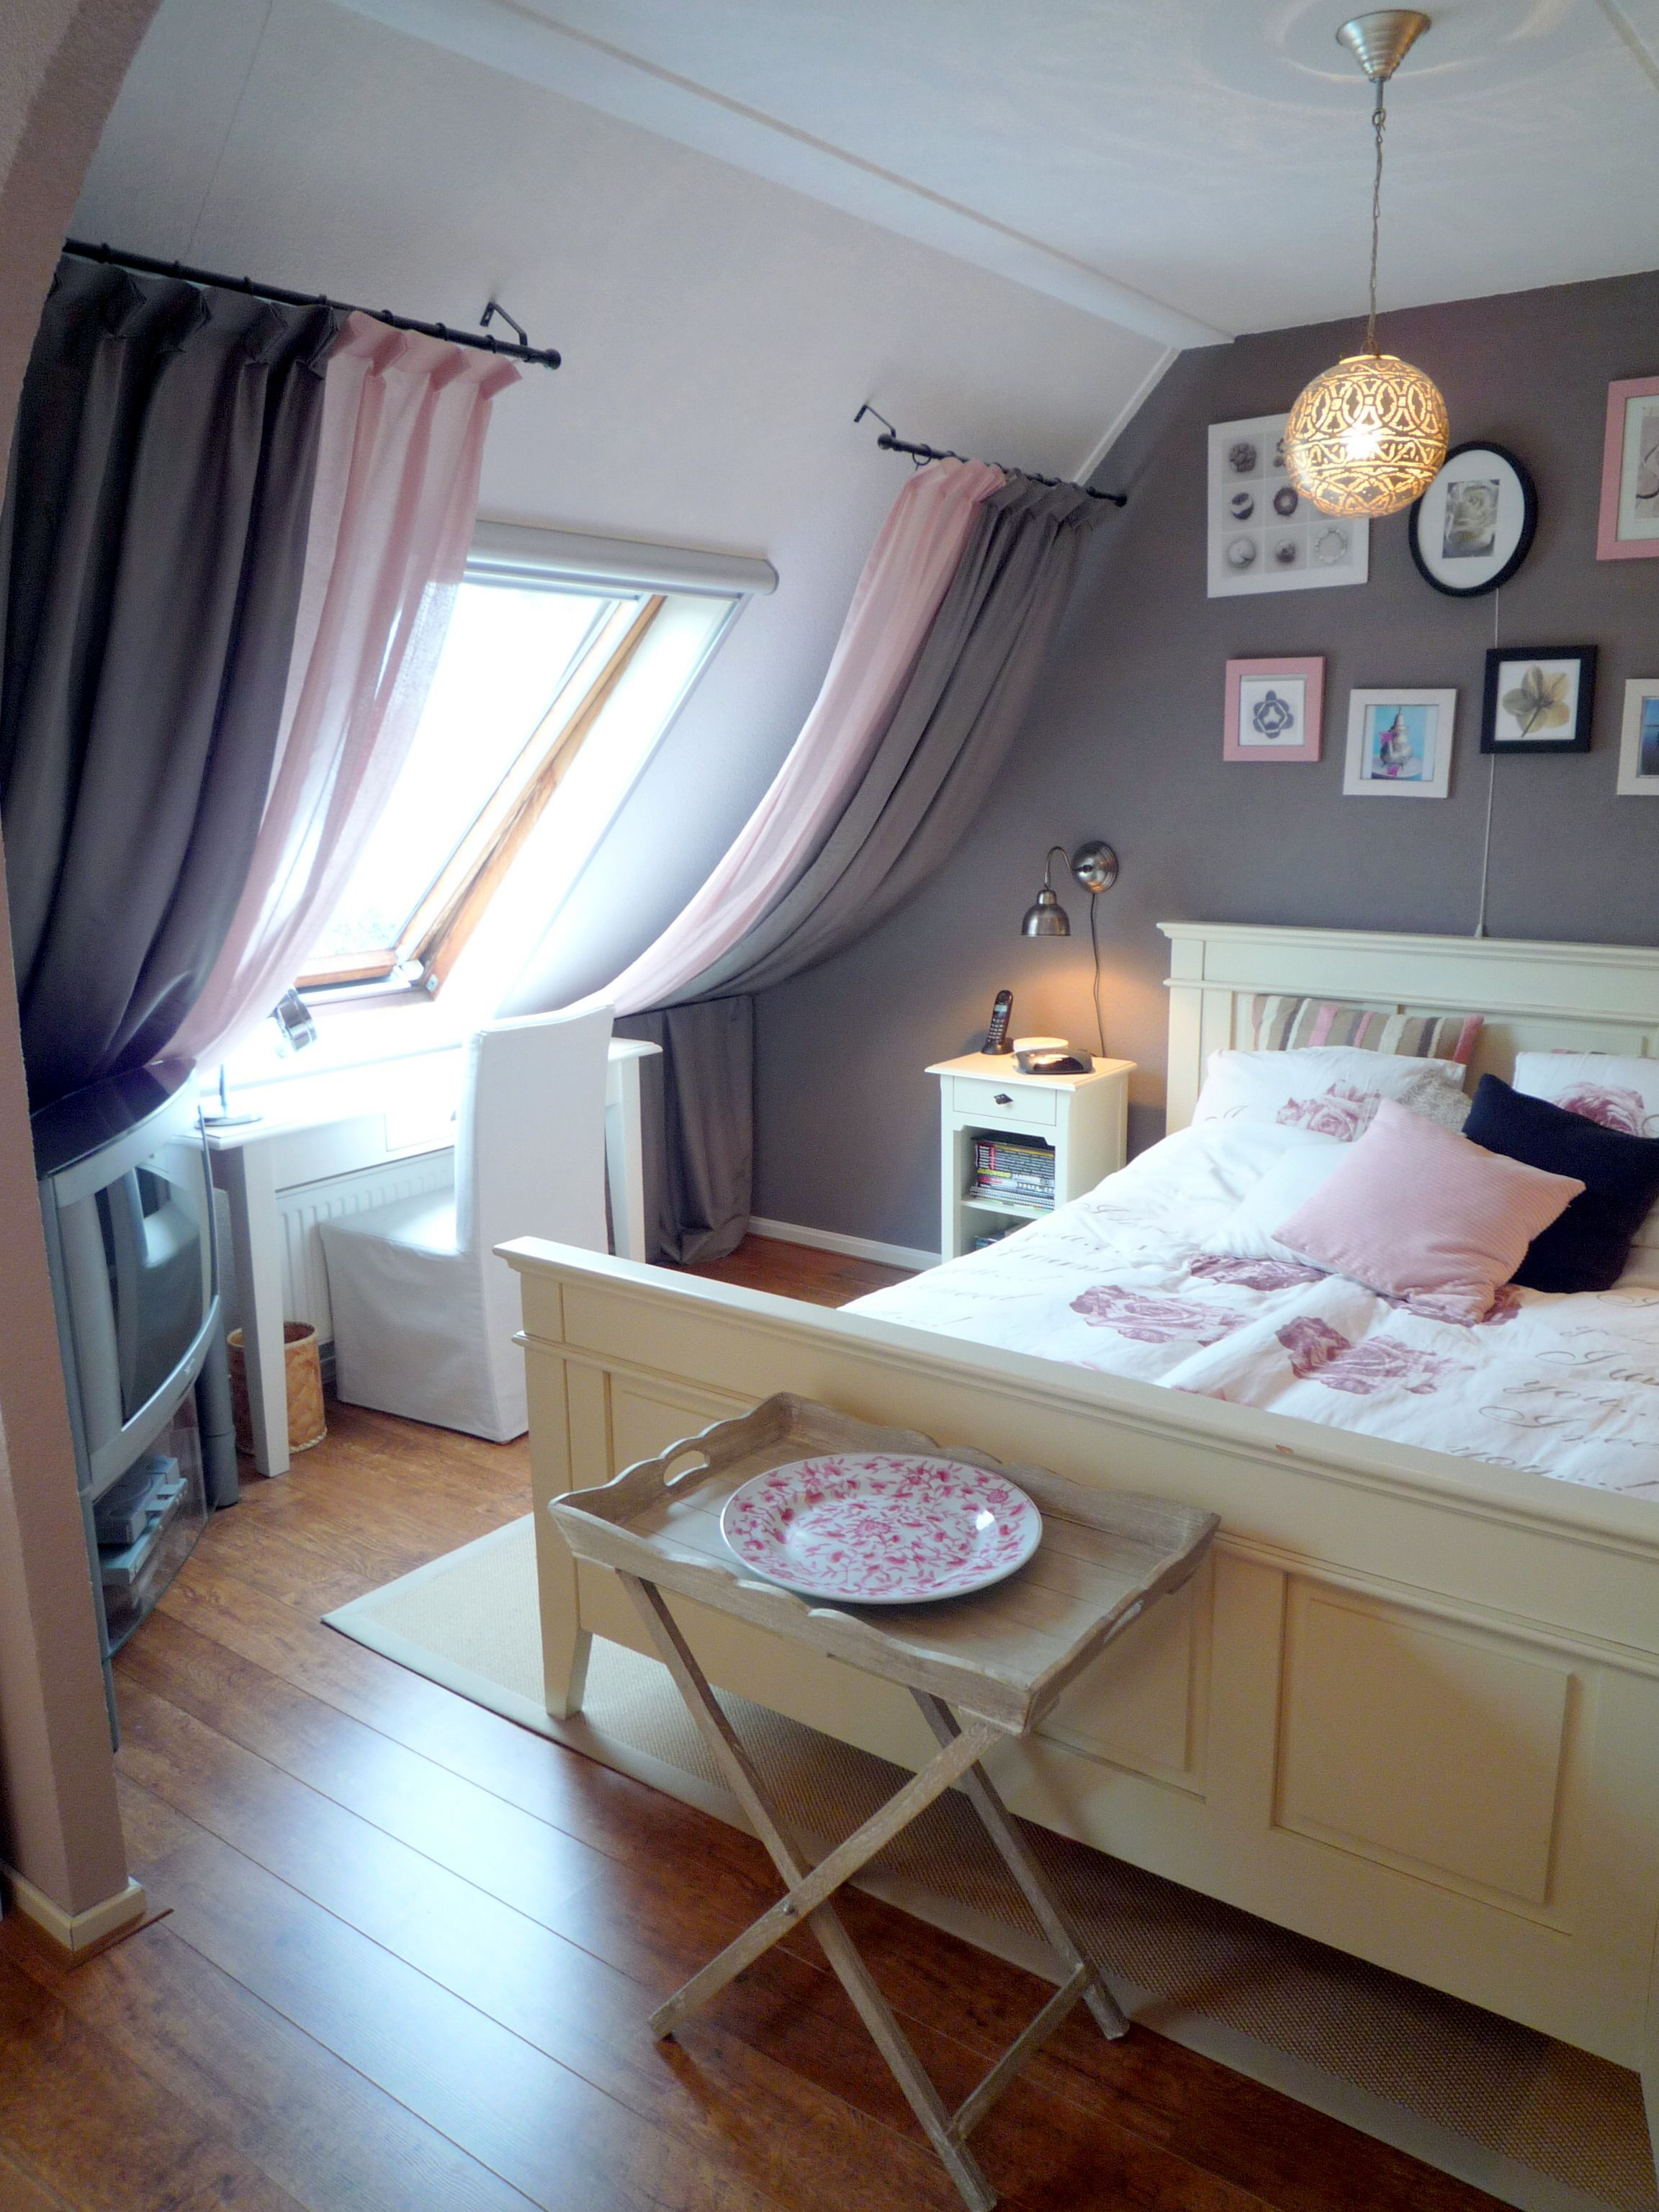 Bed against window with curtains  great way to add softness into a roof space bedroom  interior